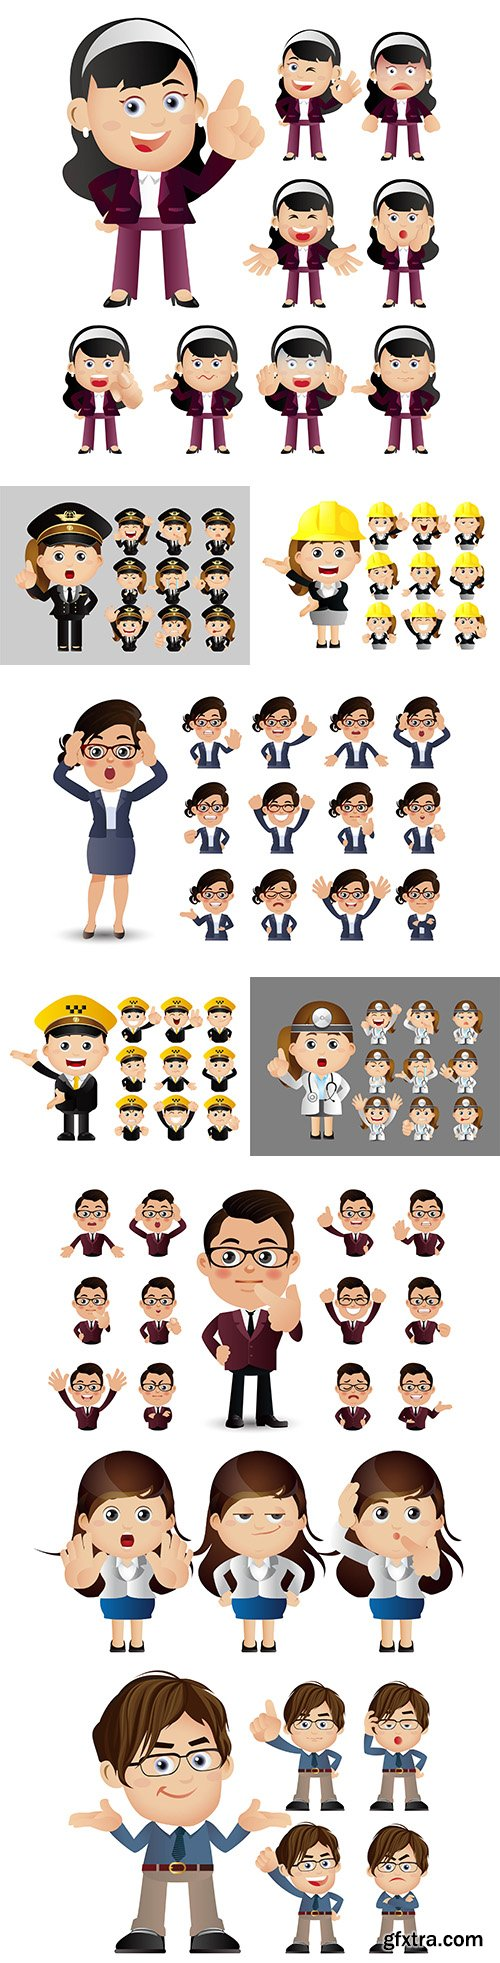 Expressions of business people with different persons and professions